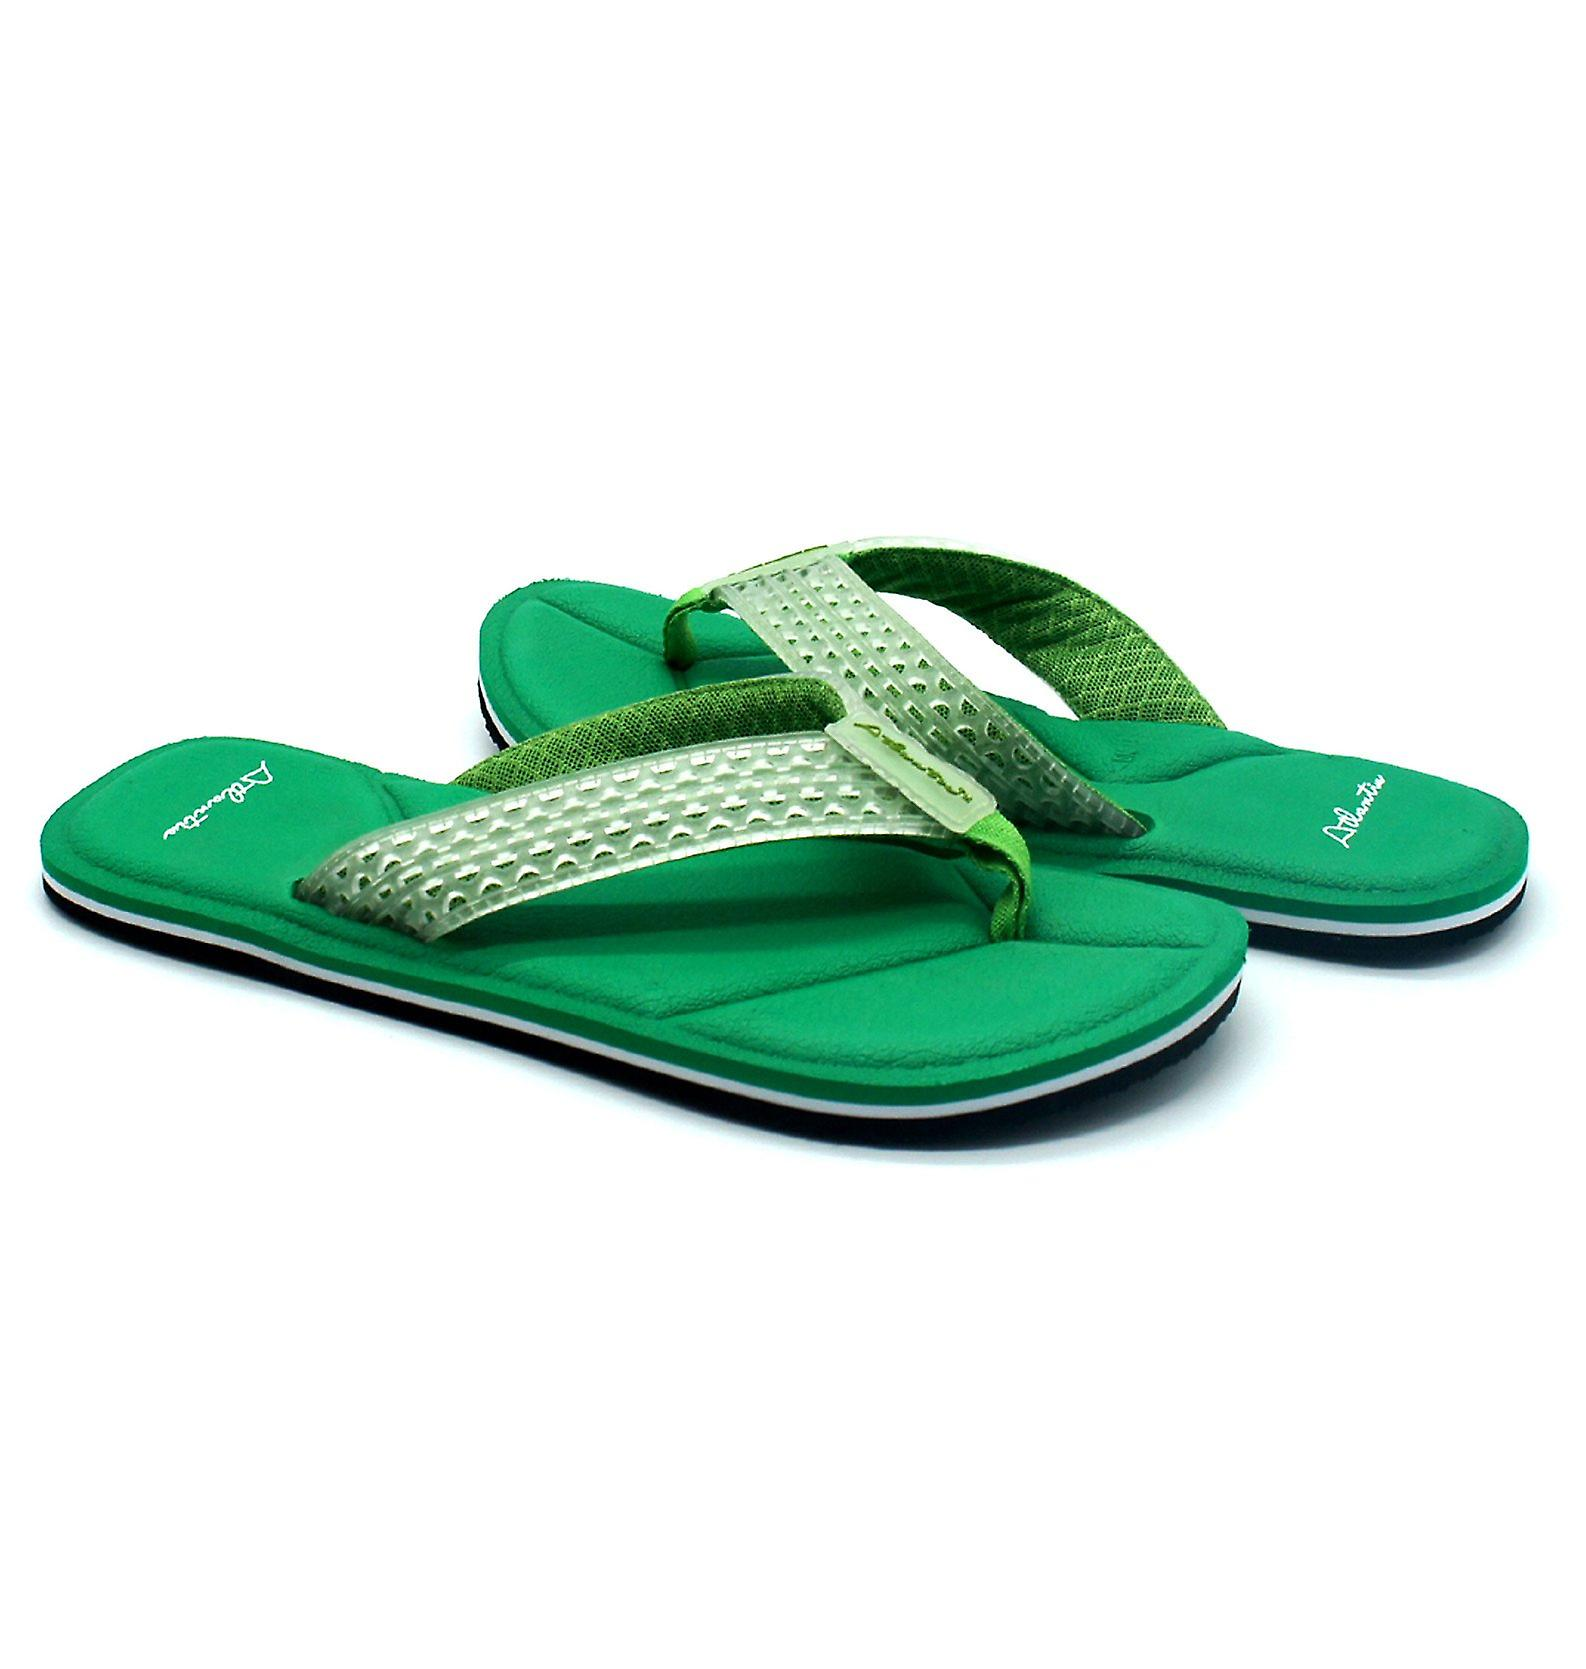 Atlantis Shoes Men Supportive Cushioned Comfortable Sandals Flip Flops Simply Colorful Green